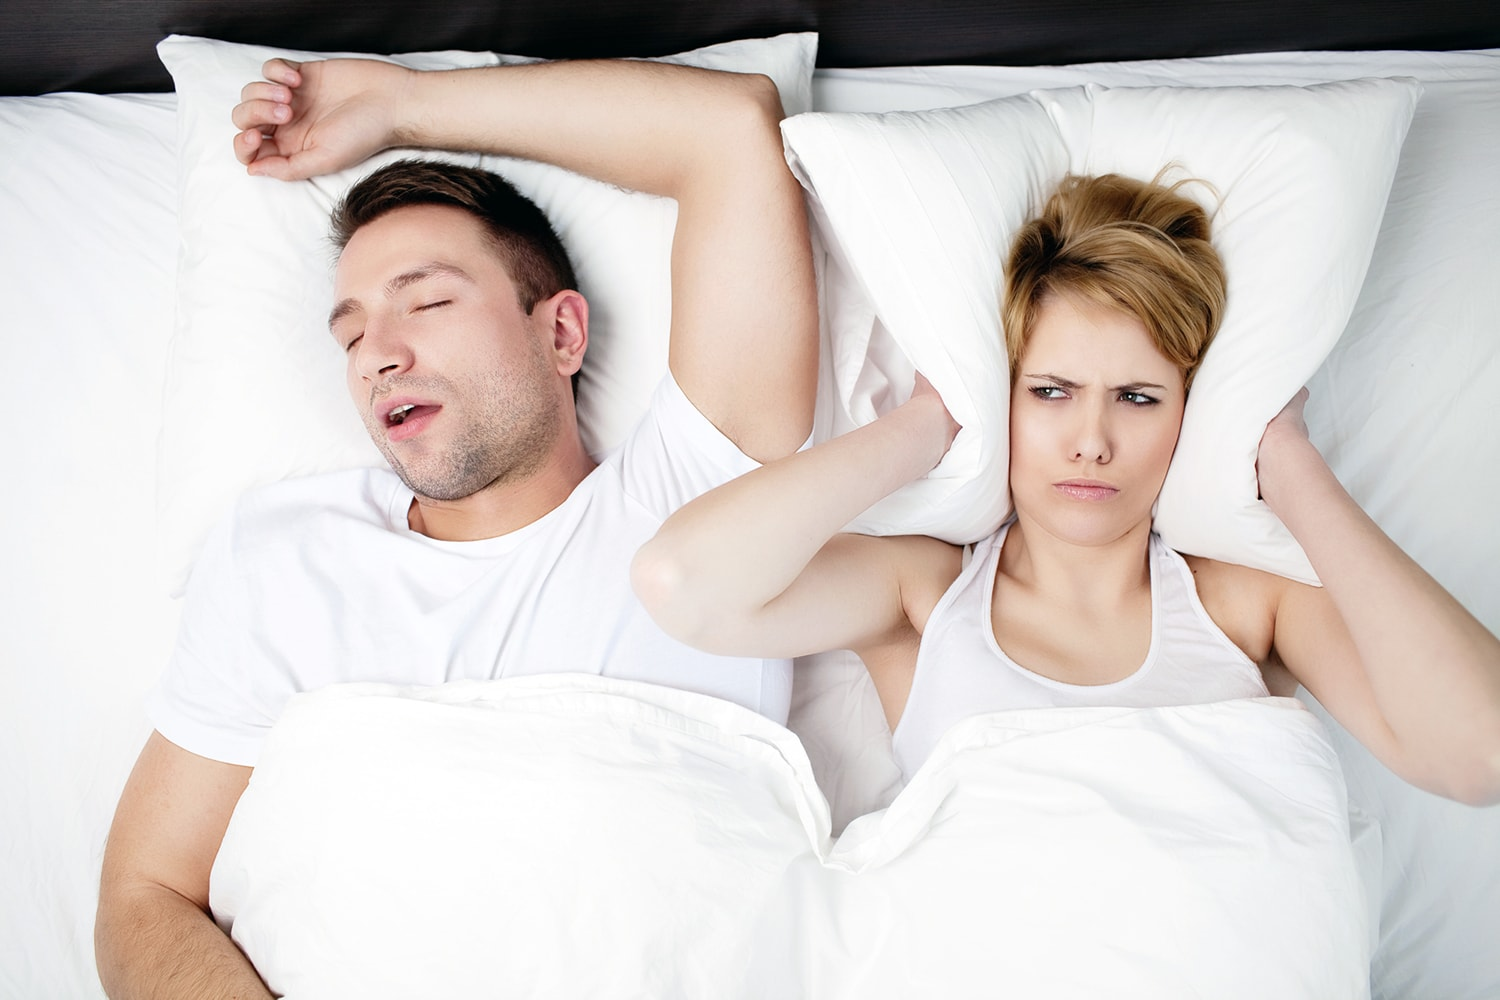 A couple in bed with the man snoring and the woman annoyed at the snoring man.